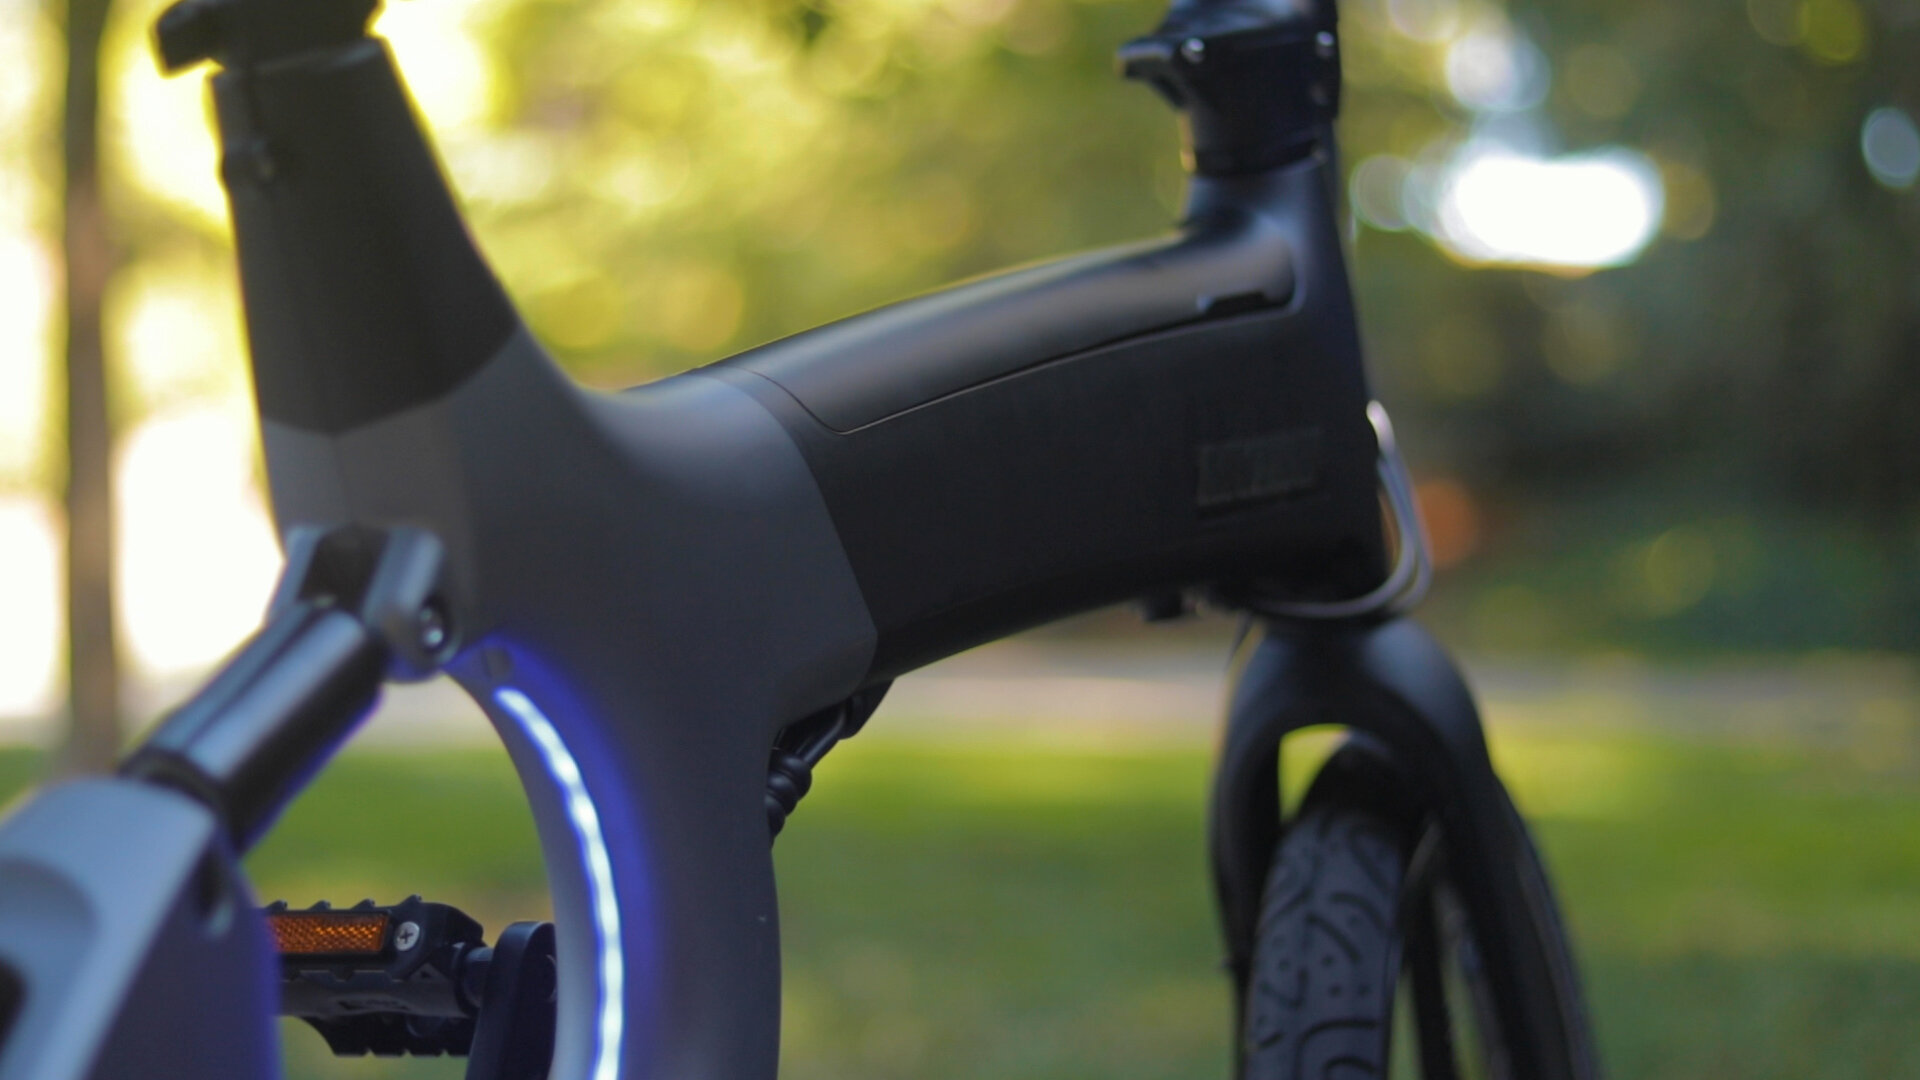 flowdot-electric-bike-review-2019-frame-3.jpg